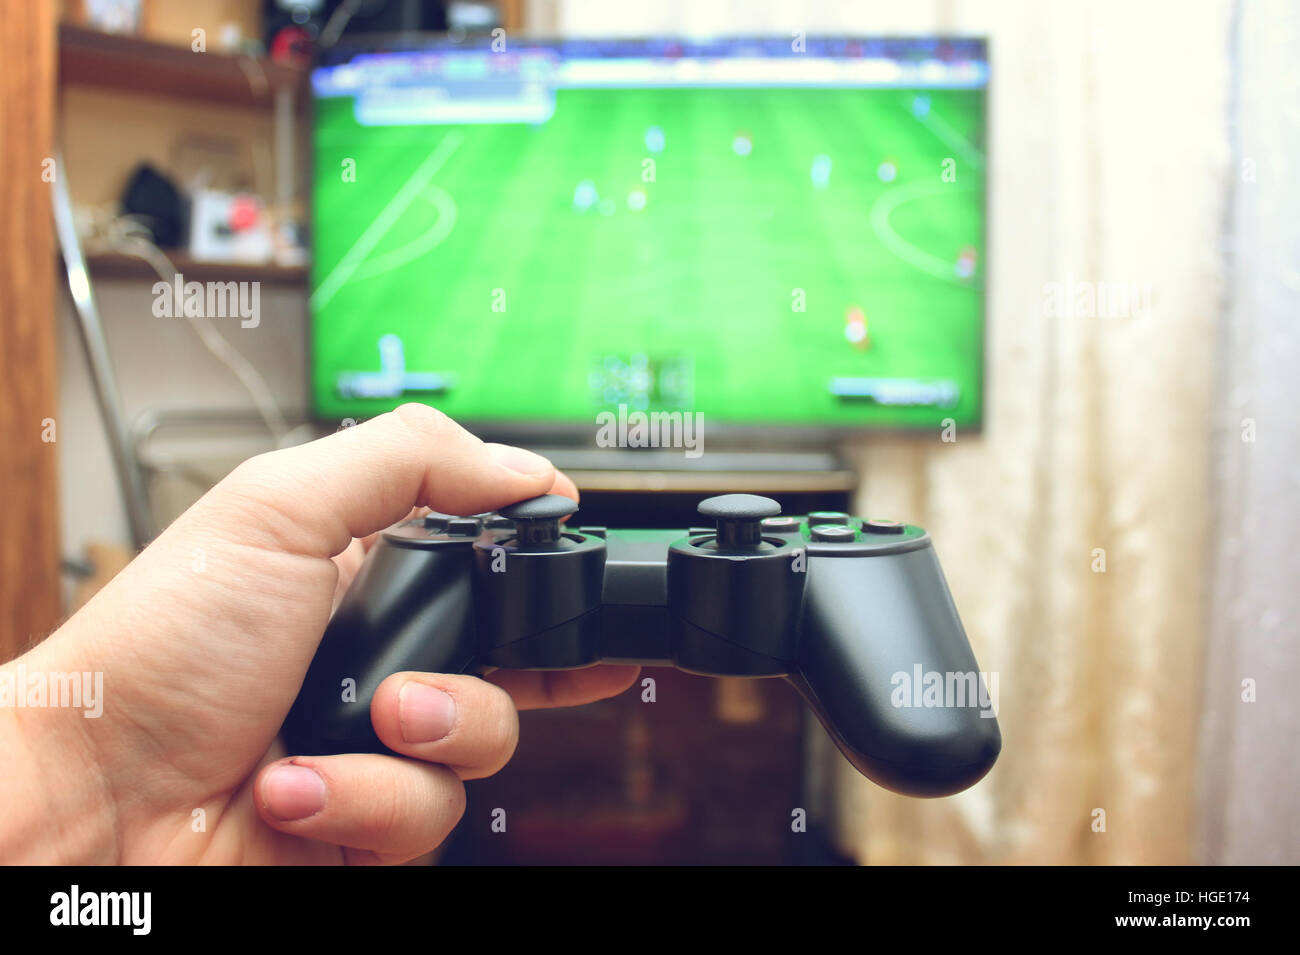 Playing football with the joystick on the game console - Stock Image